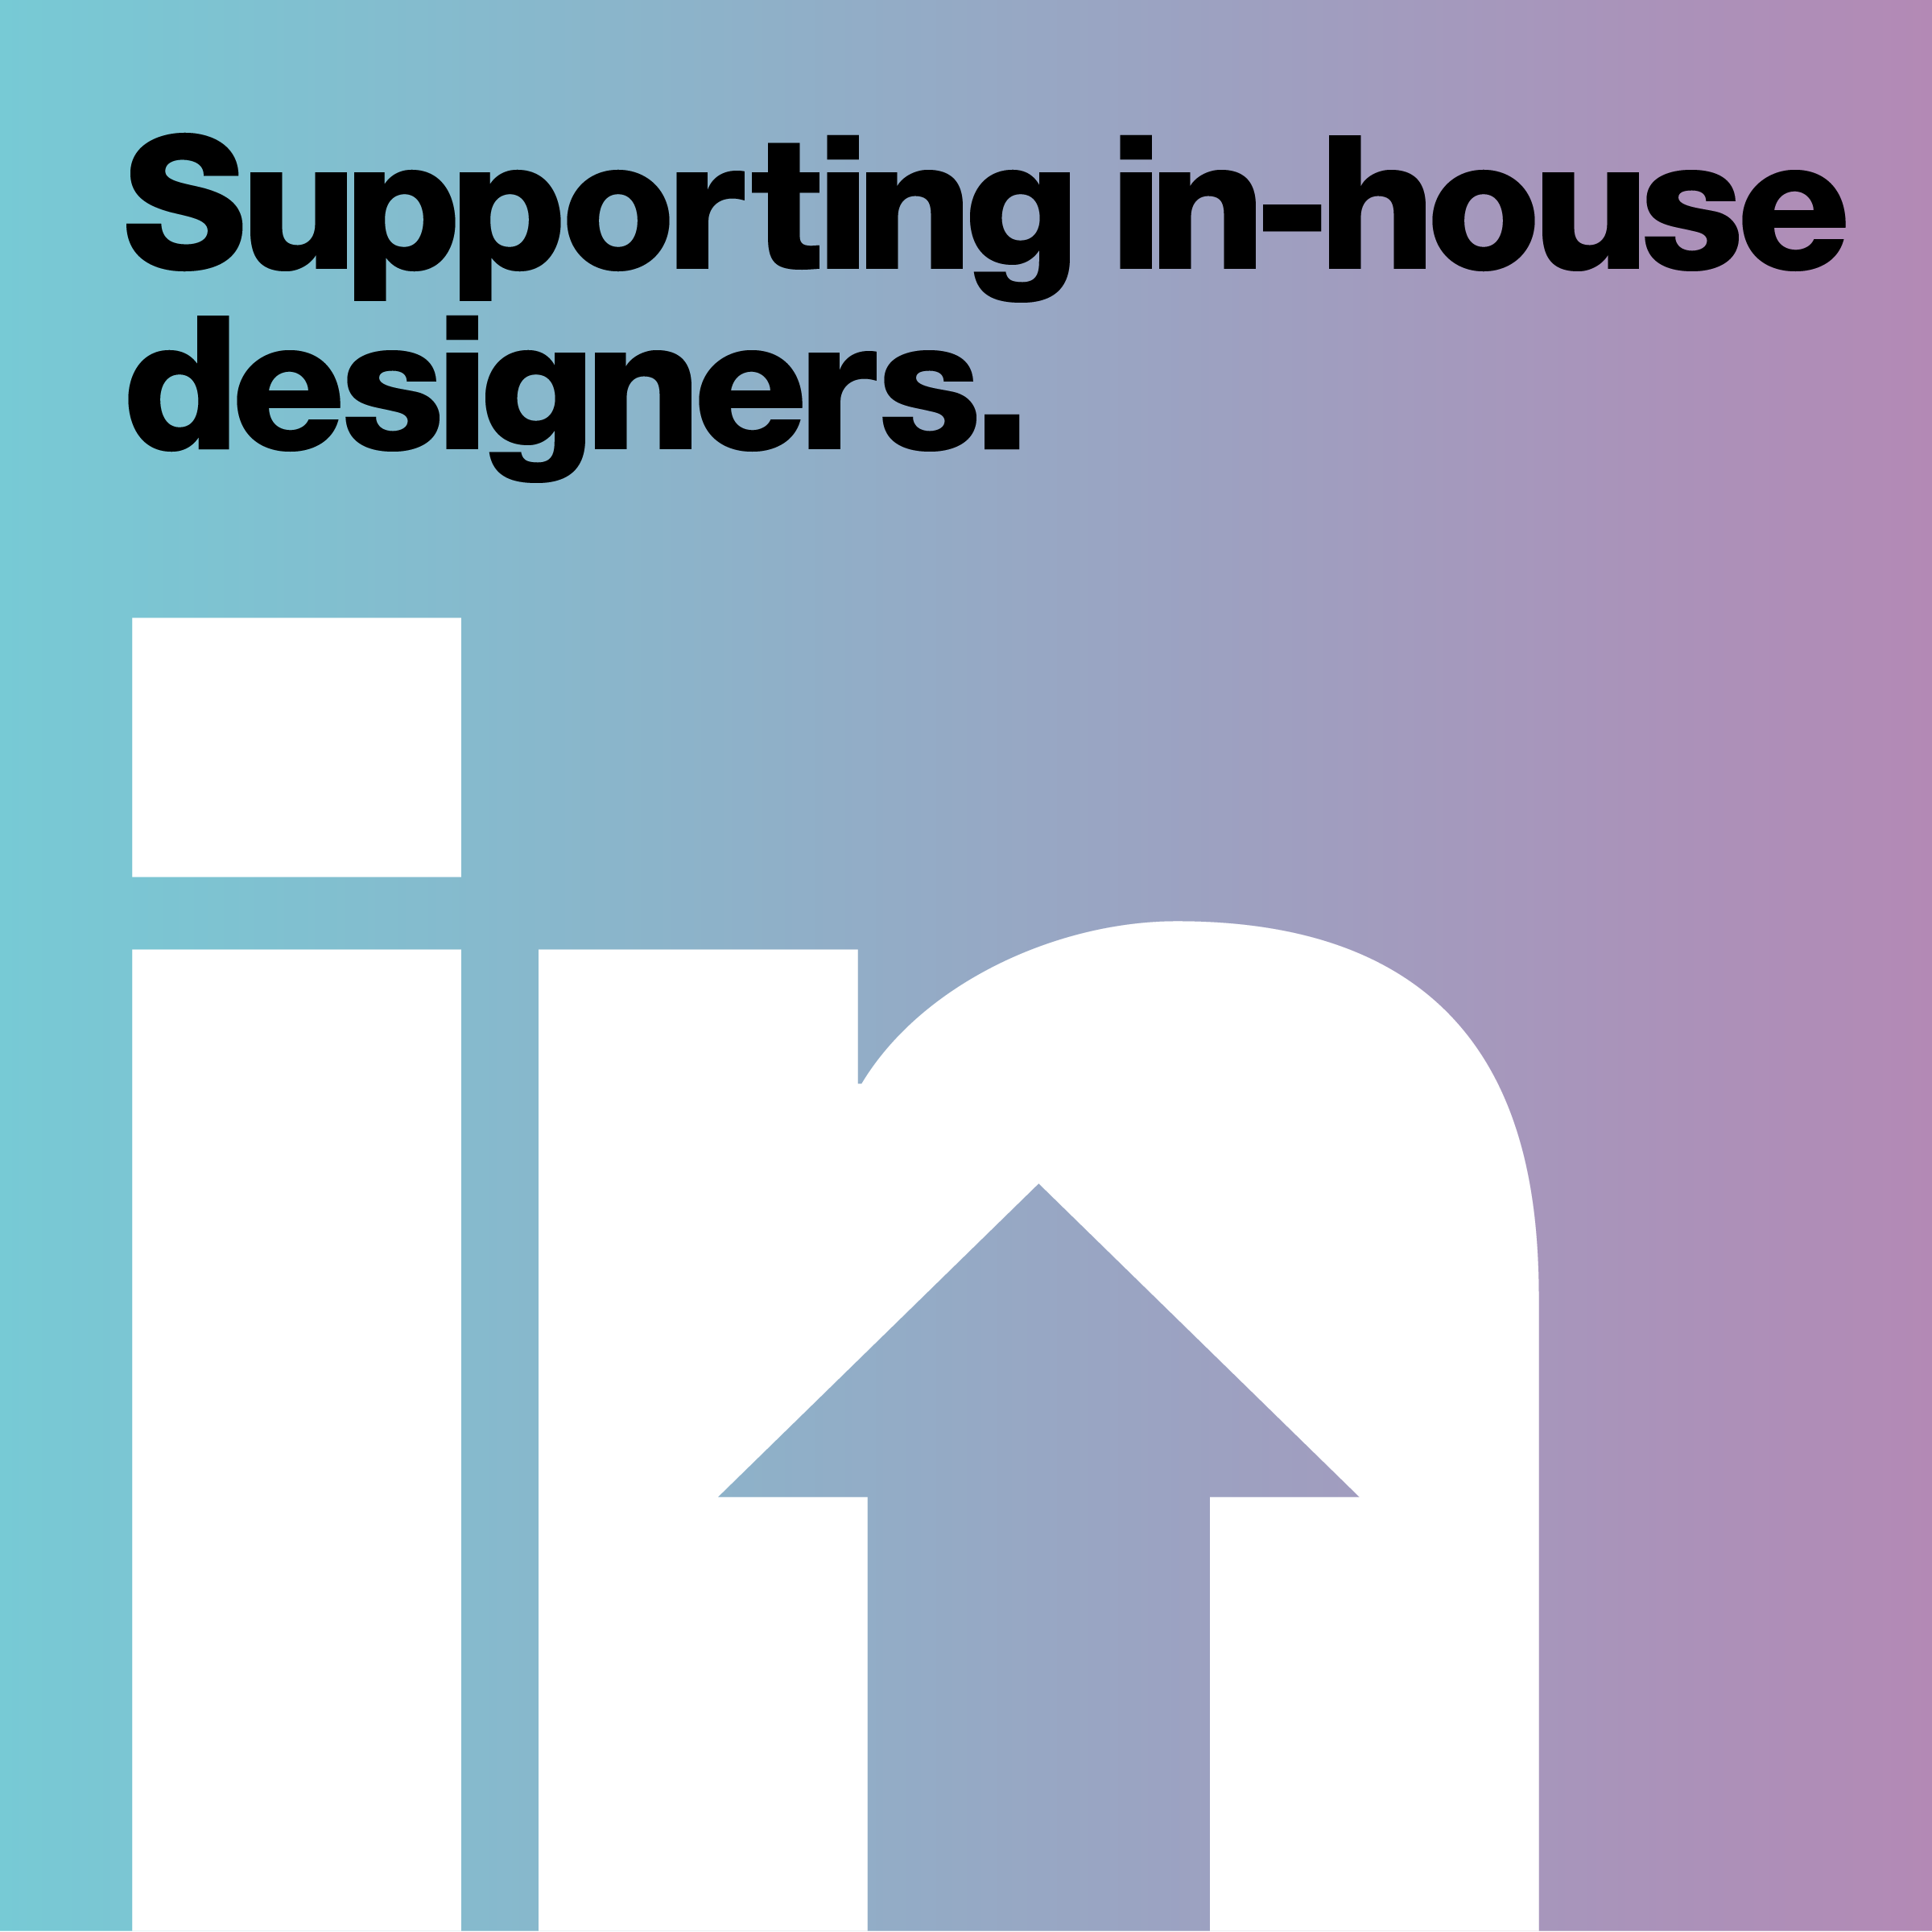 AIGA's In-house INitiative